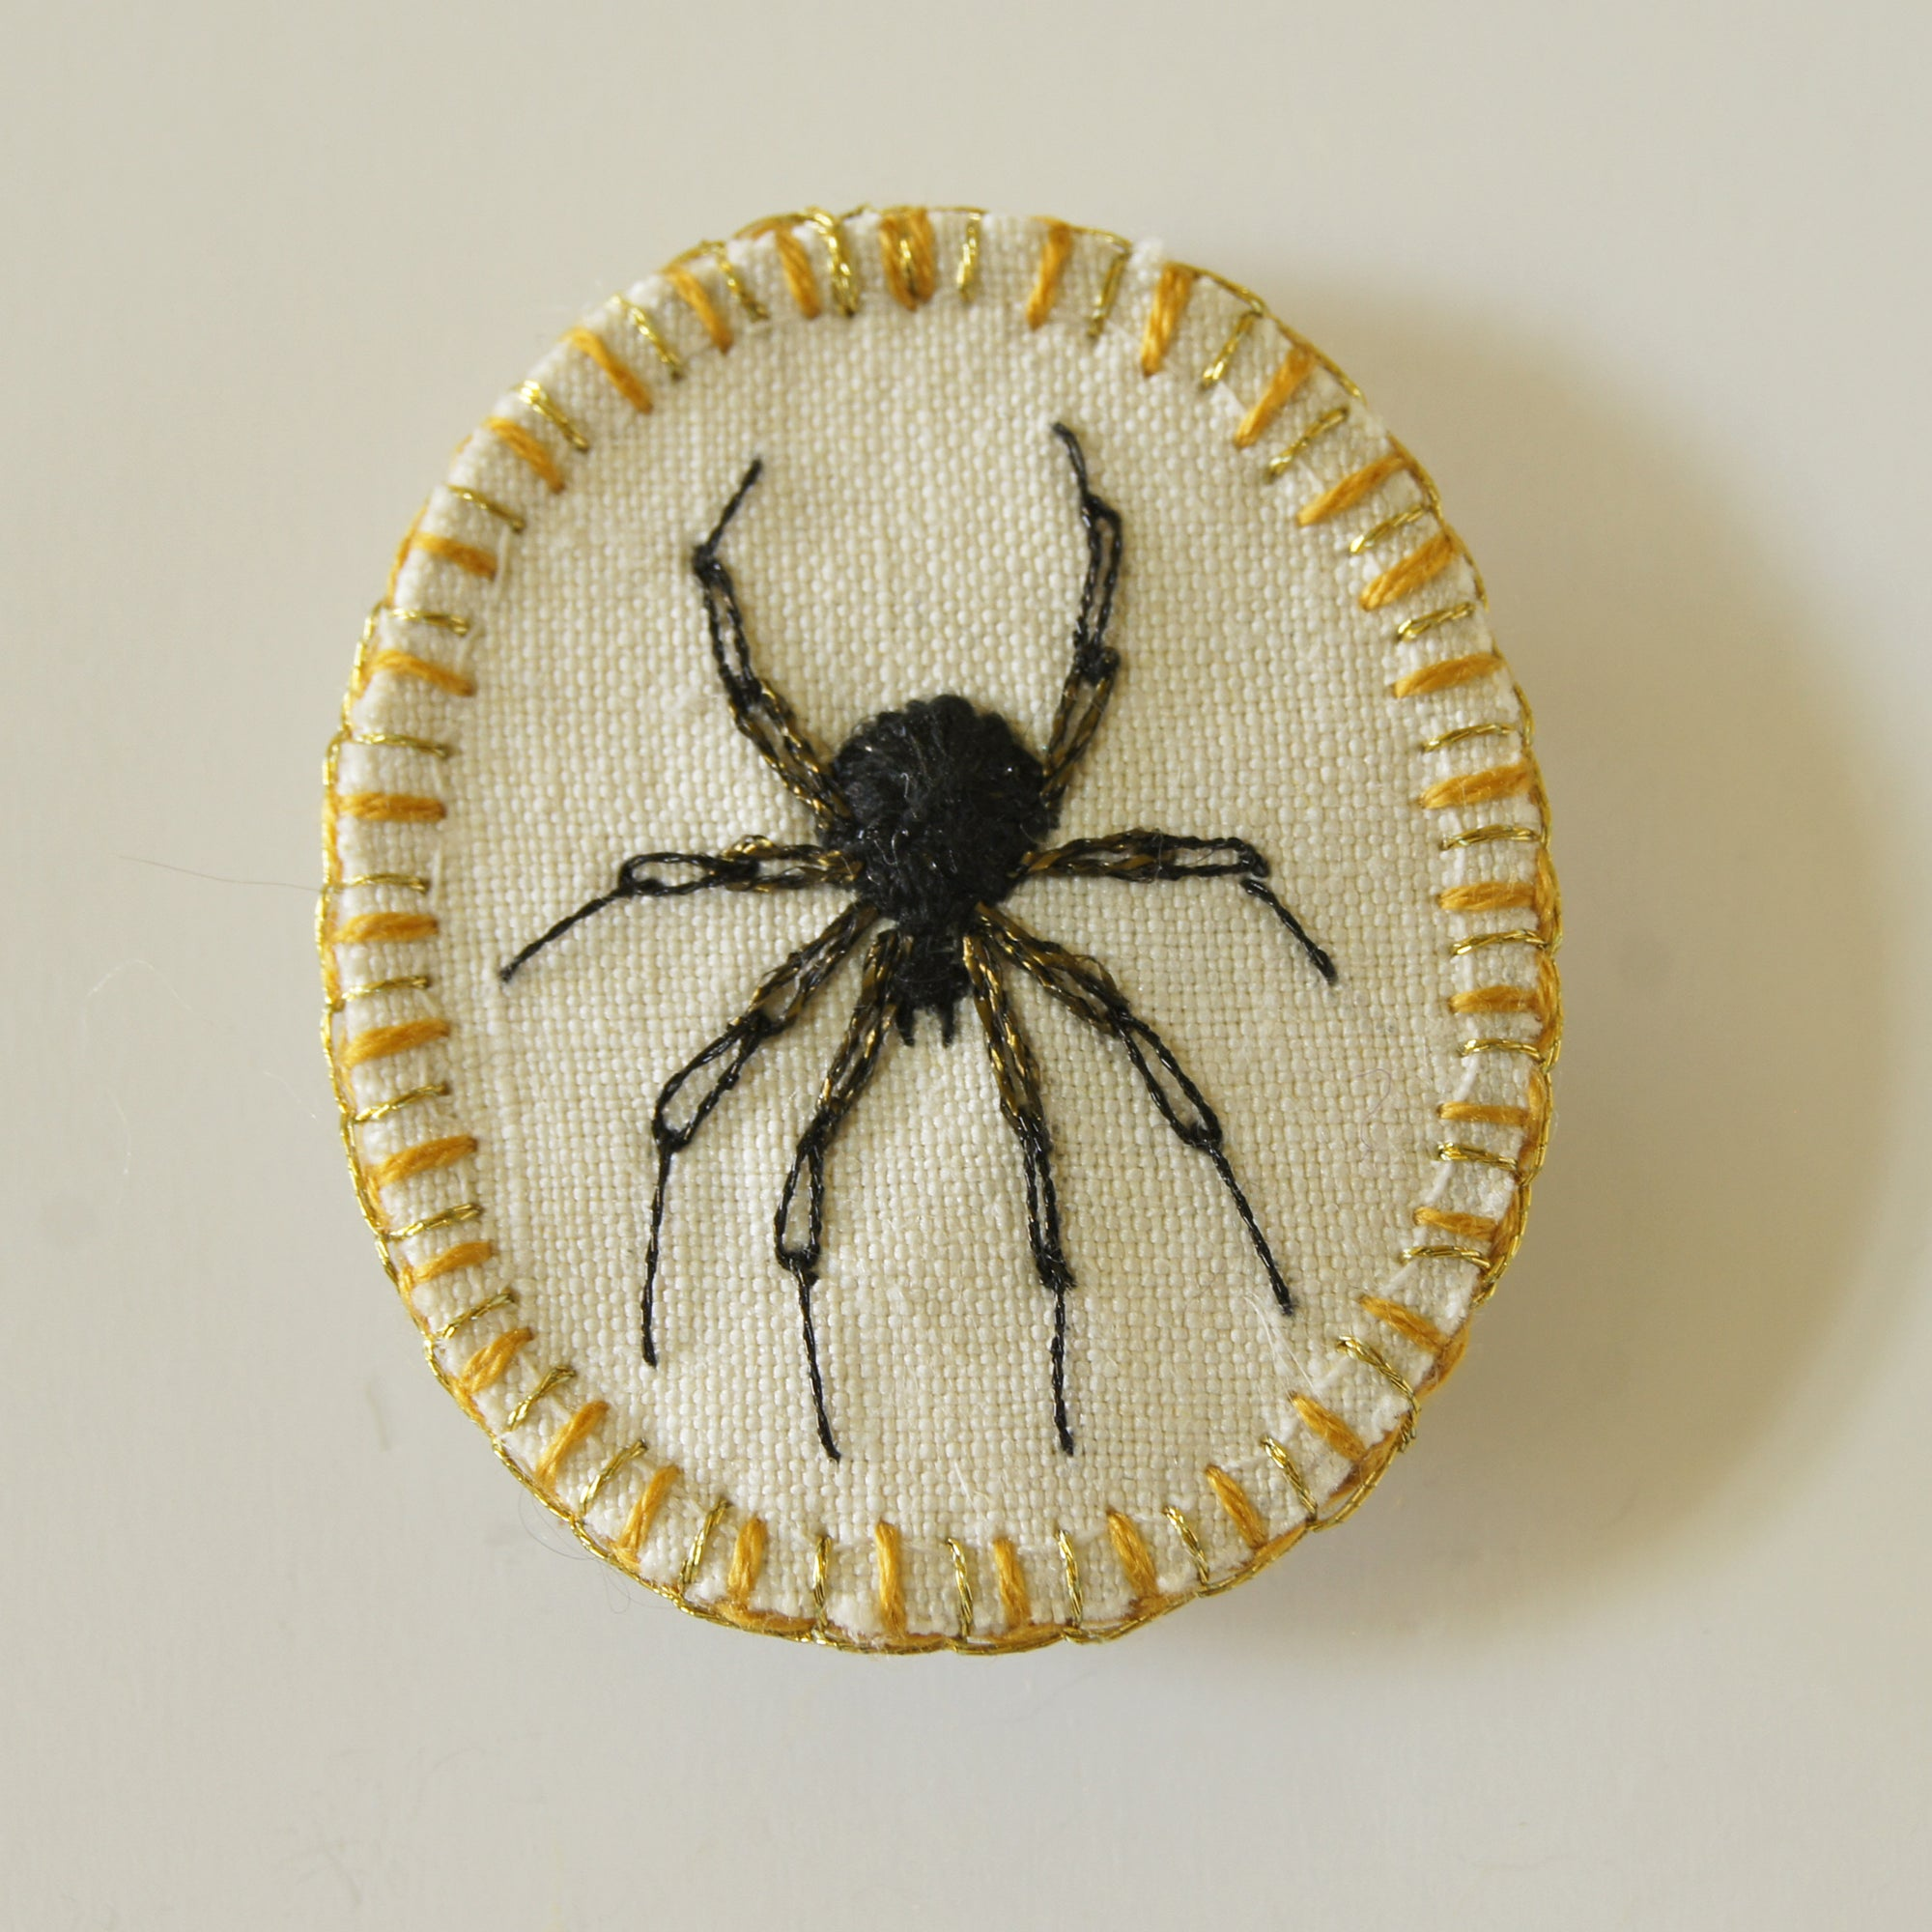 Arachnid Brooch Hand Embroidered Spider Pin Arachnophile Jewelry